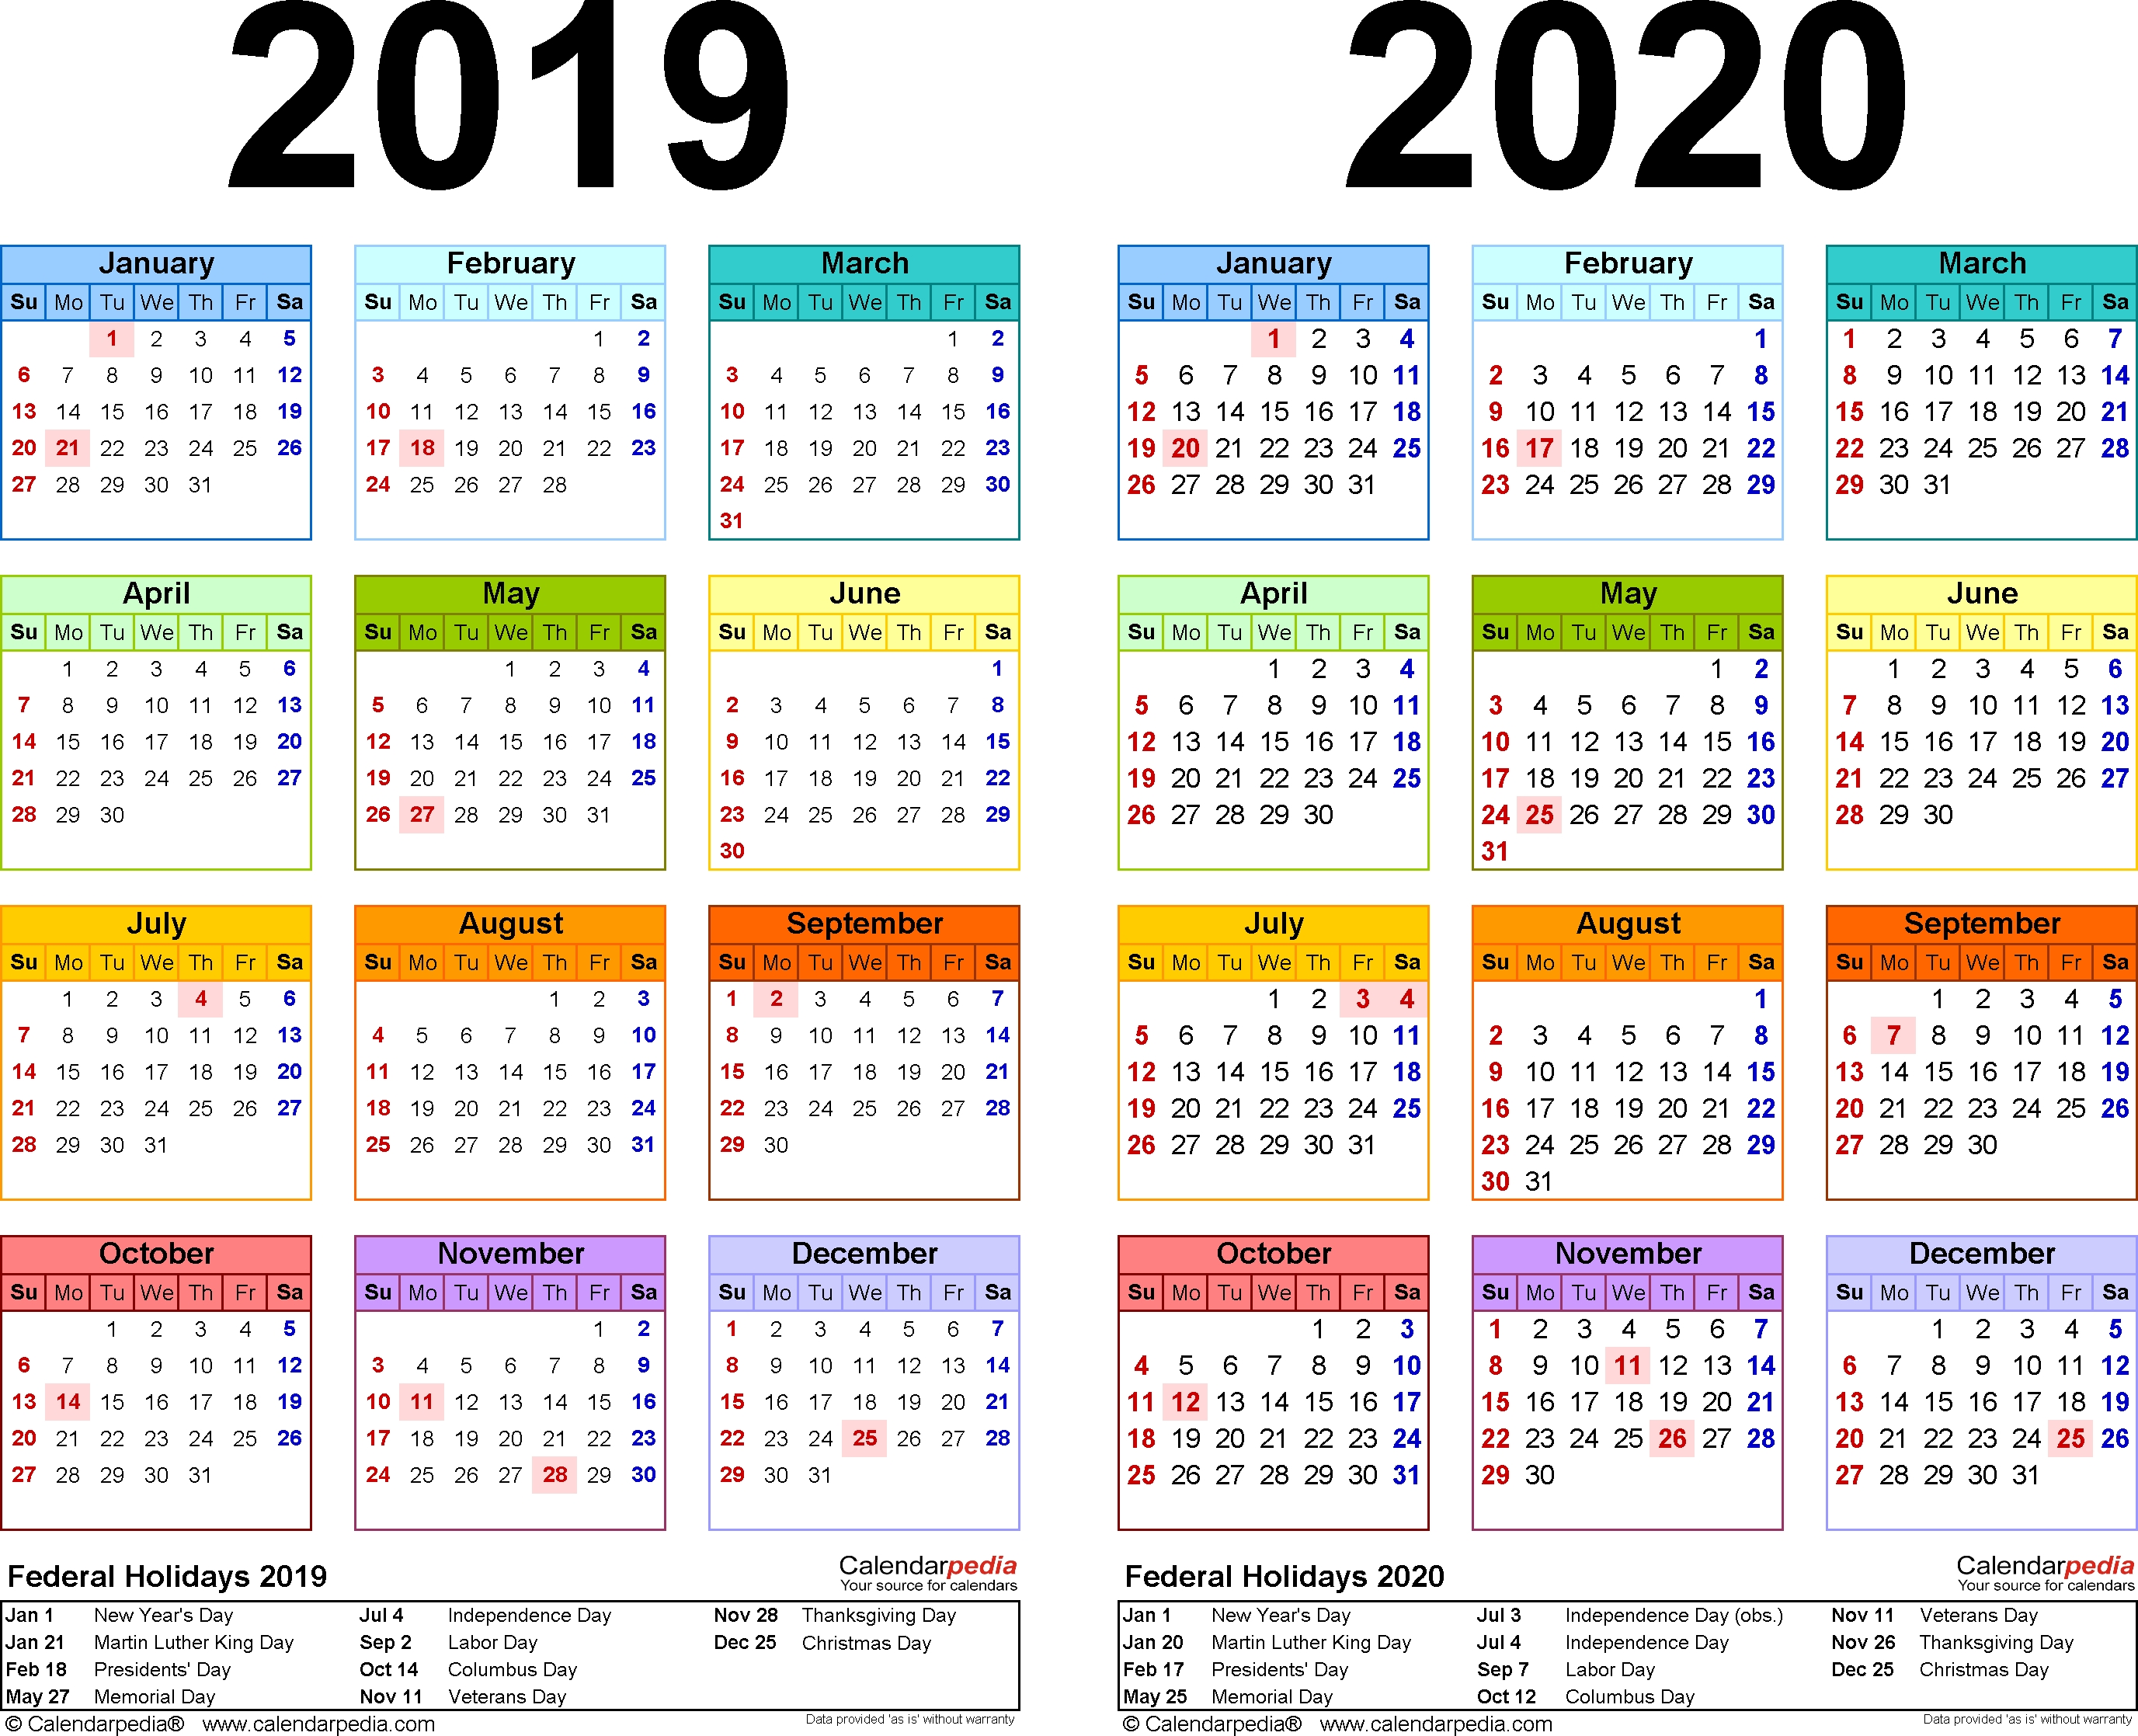 Free Pocket Calendar Template - Colona.rsd7 pertaining to Free Printable Pocket Size Calendars 2019-2020